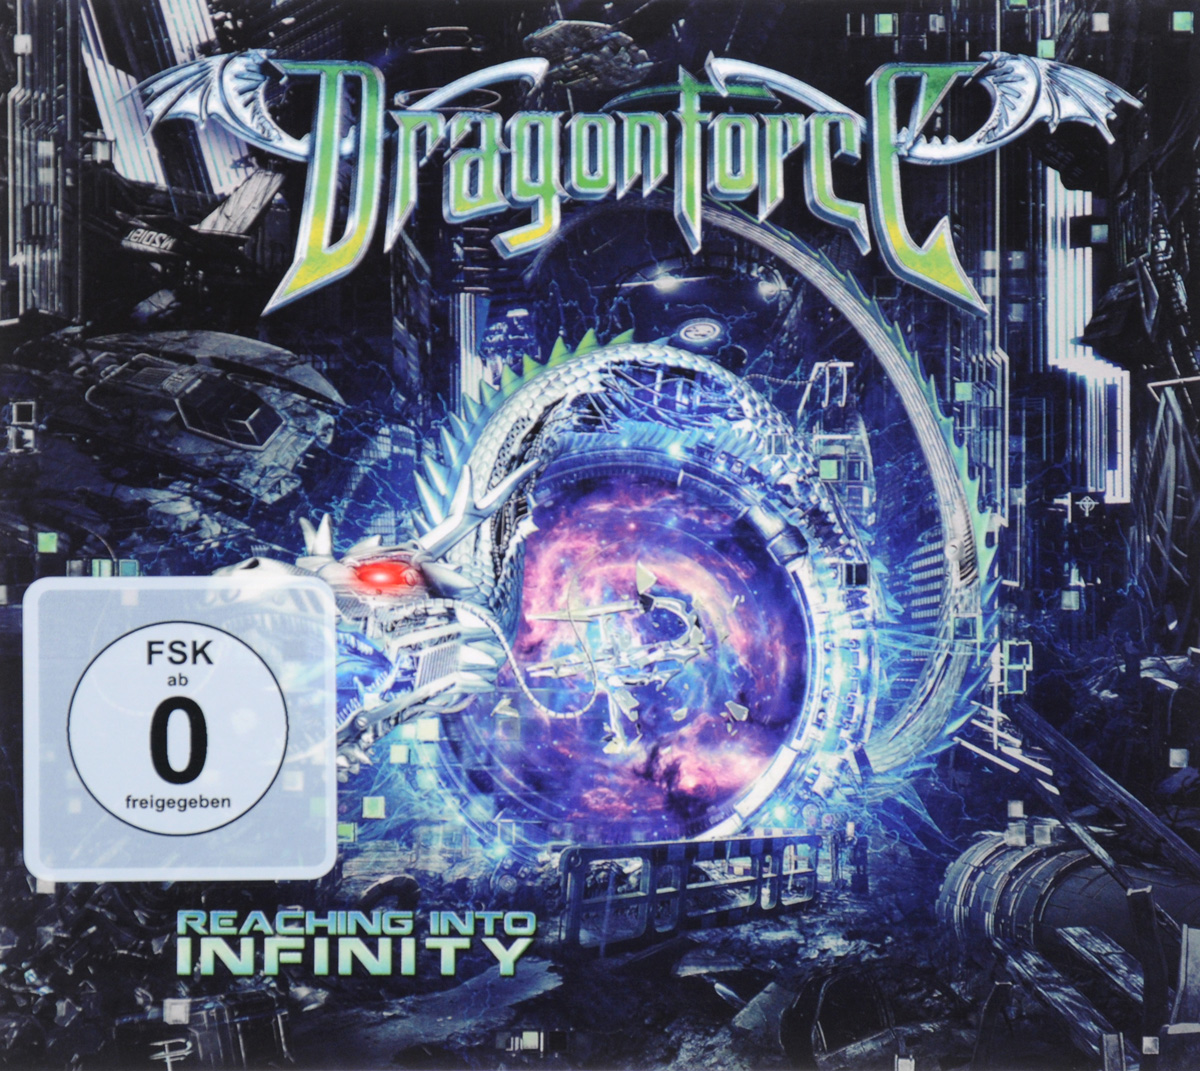 Dragonforce: Reaching Into Infinity. Limited Edition (DVD + CD) 3 layers stainless steel mini rice cooker multifunctional insulation plug in electric heating cooking lunch box